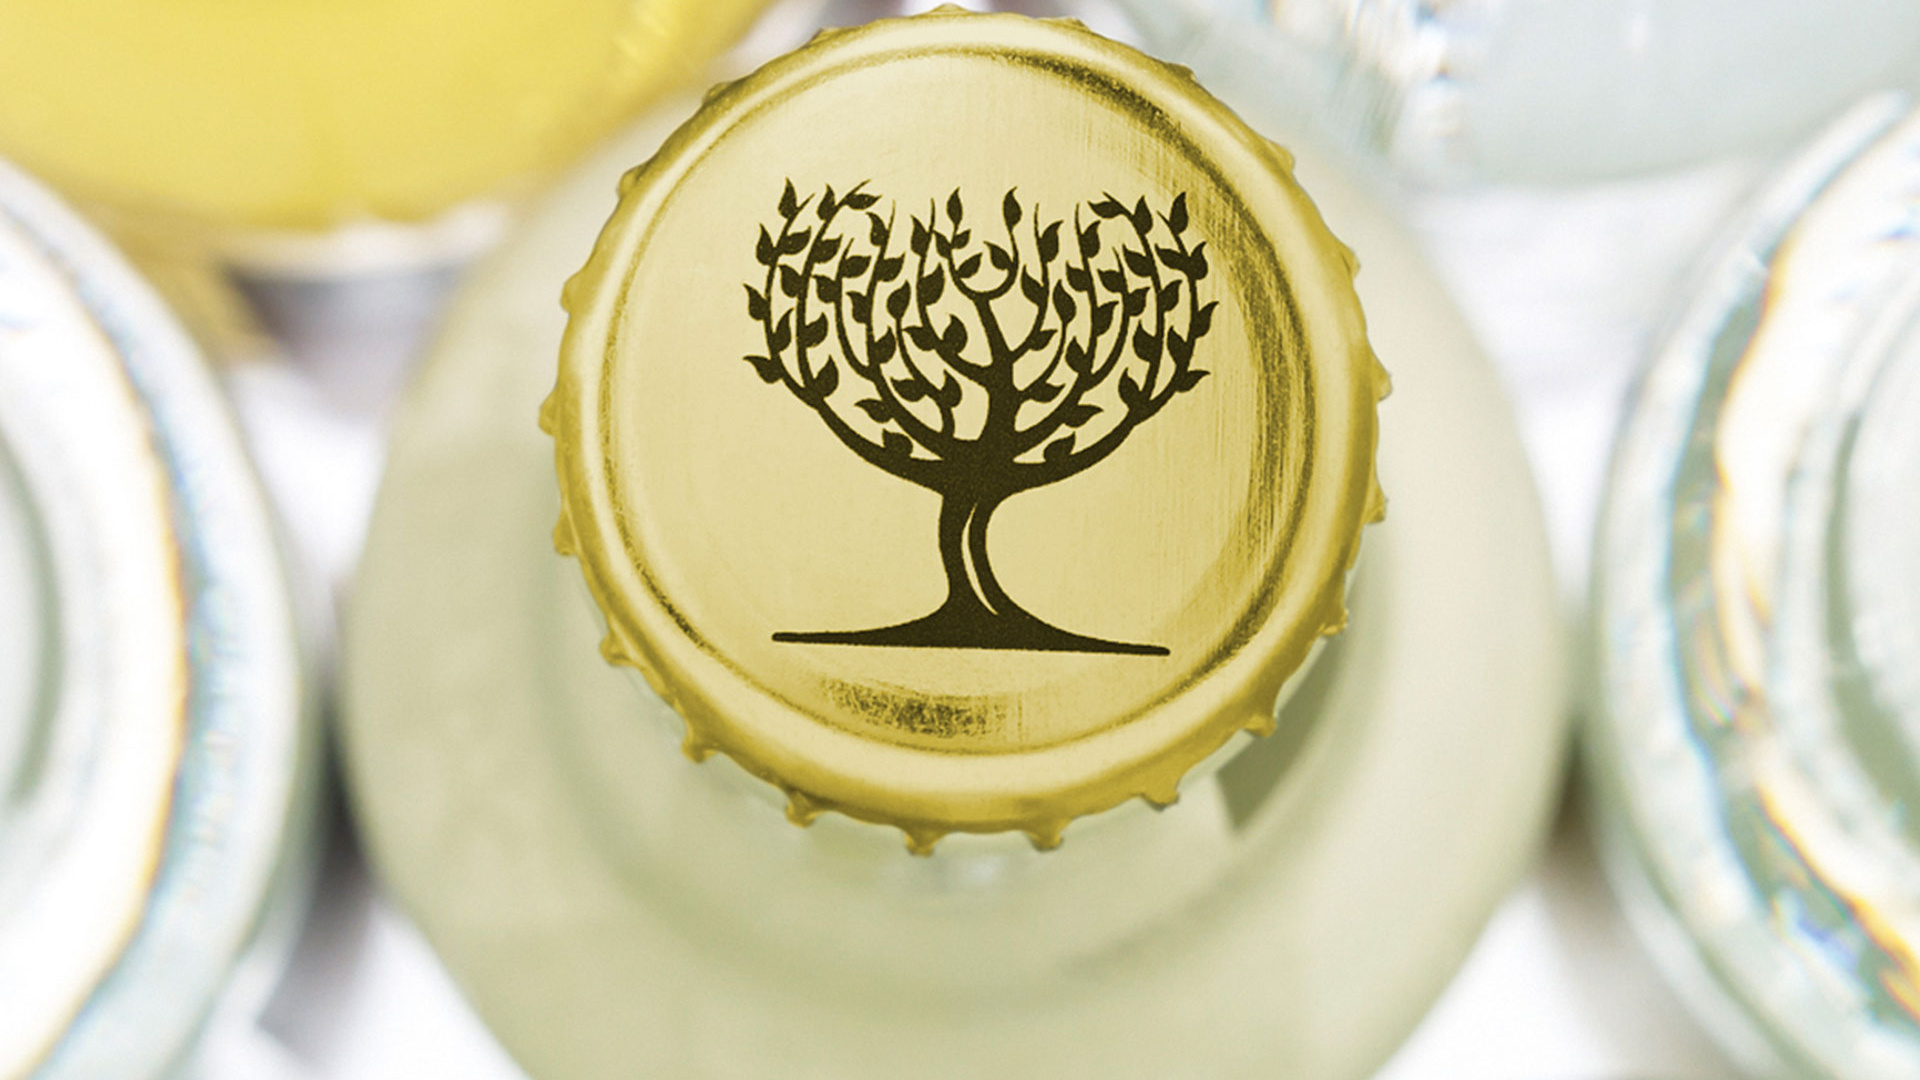 The cap of one of Fever-Tree's mixers